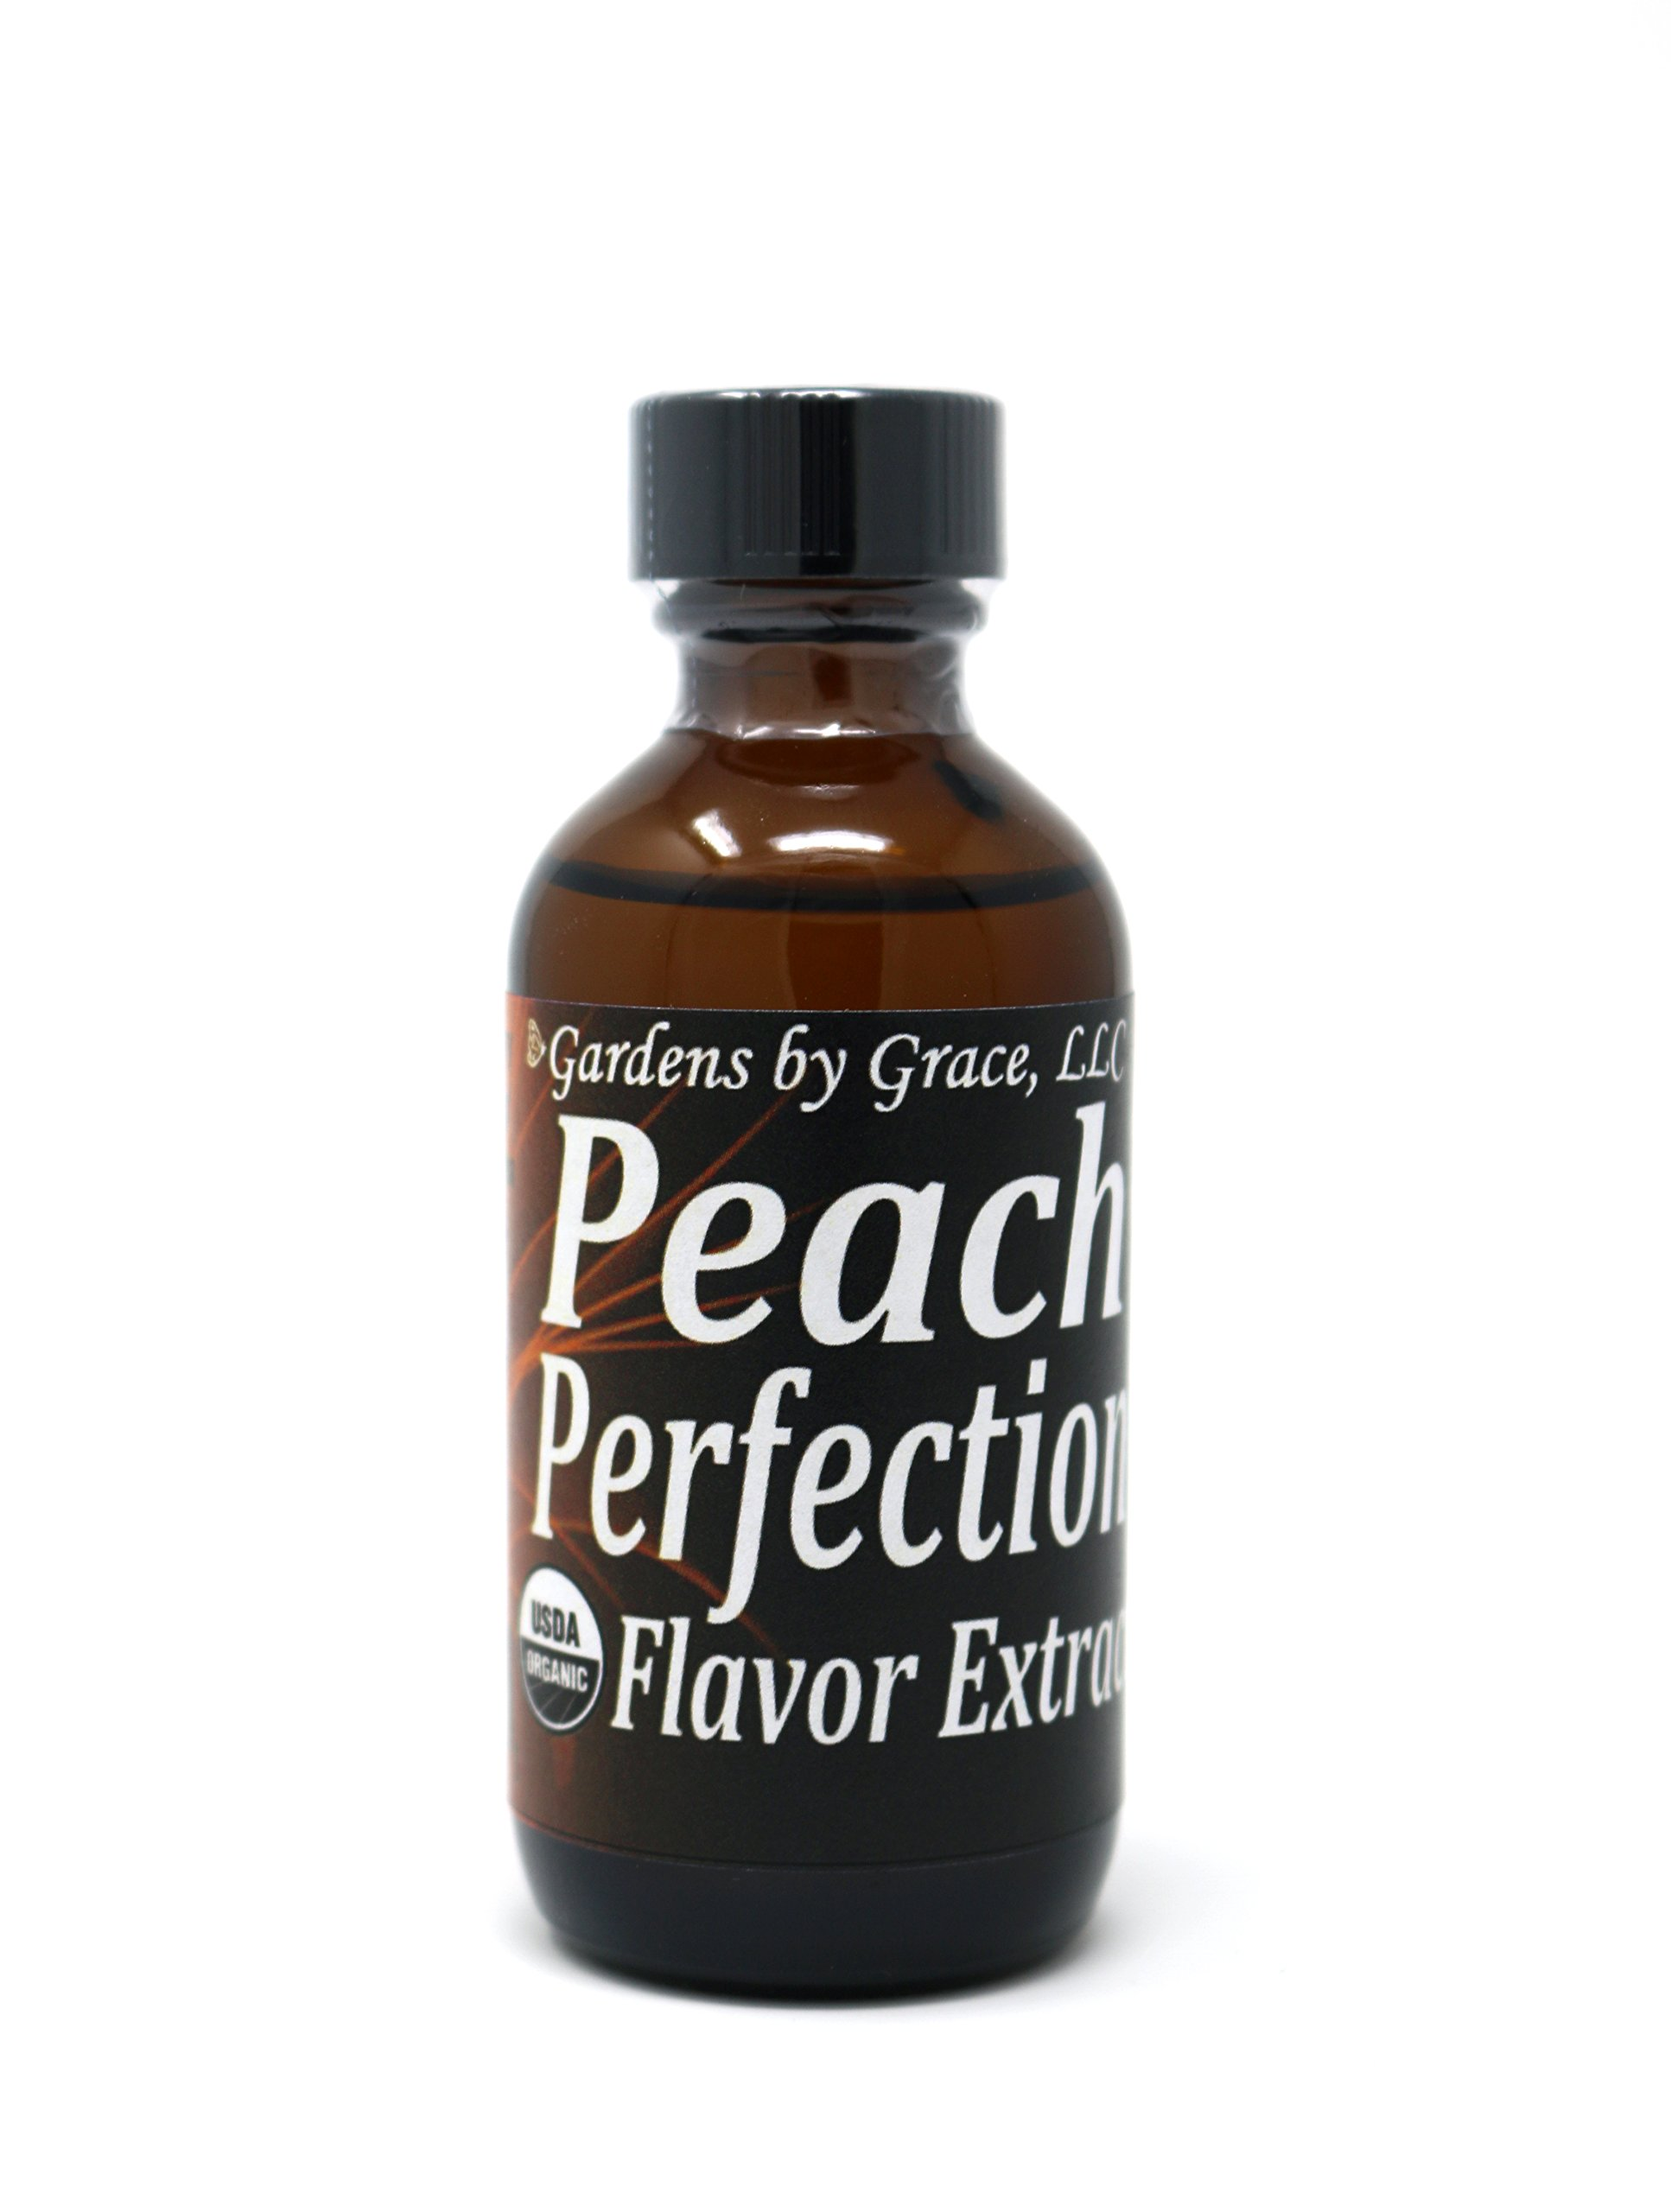 Organic Flavor Extract Peach | Use in Gourmet Snacks, Candy, Beverages, Baking, Ice Cream, Frosting, Syrup and More | GMO-Free, Vegan, Gluten-Free, 2 oz by Gardens by Grace (Image #1)